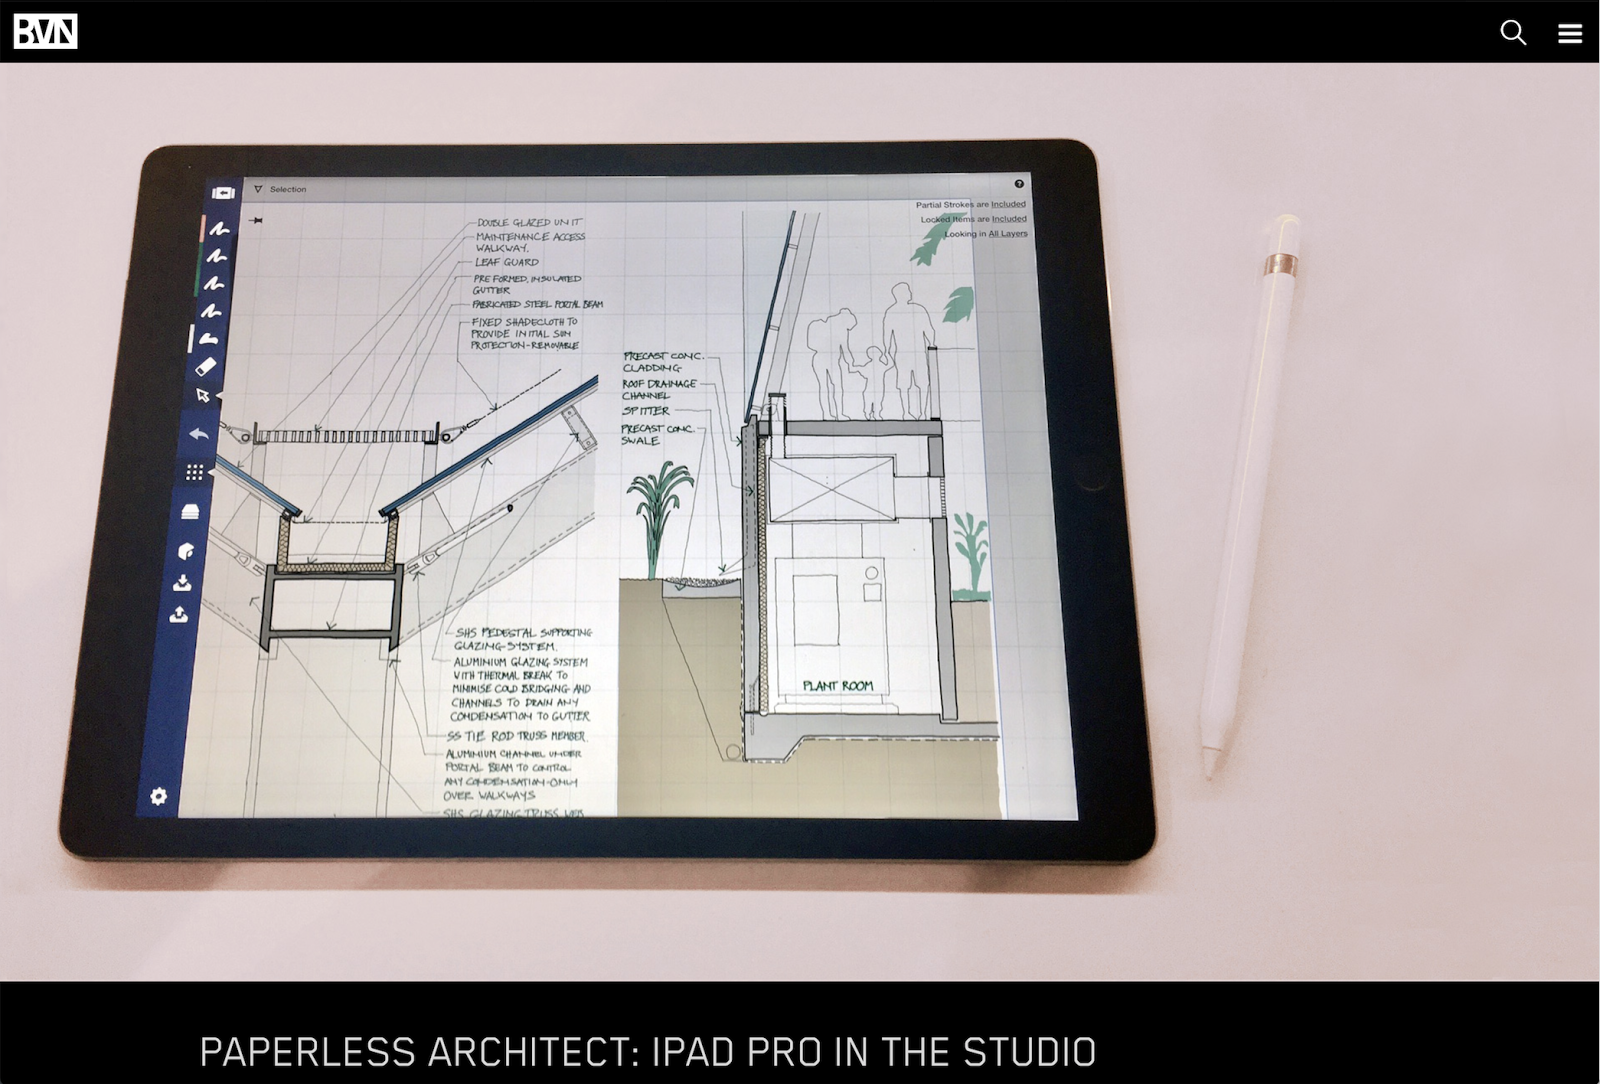 The Design Life Of A Paperless Architect Concepts Medium Sometimes You Need To Create Circuit Schematic But Don T Or Blog Post Referred Describes Various Tasks Which Make Up Most My Workload If Are Interested Can Read It Here